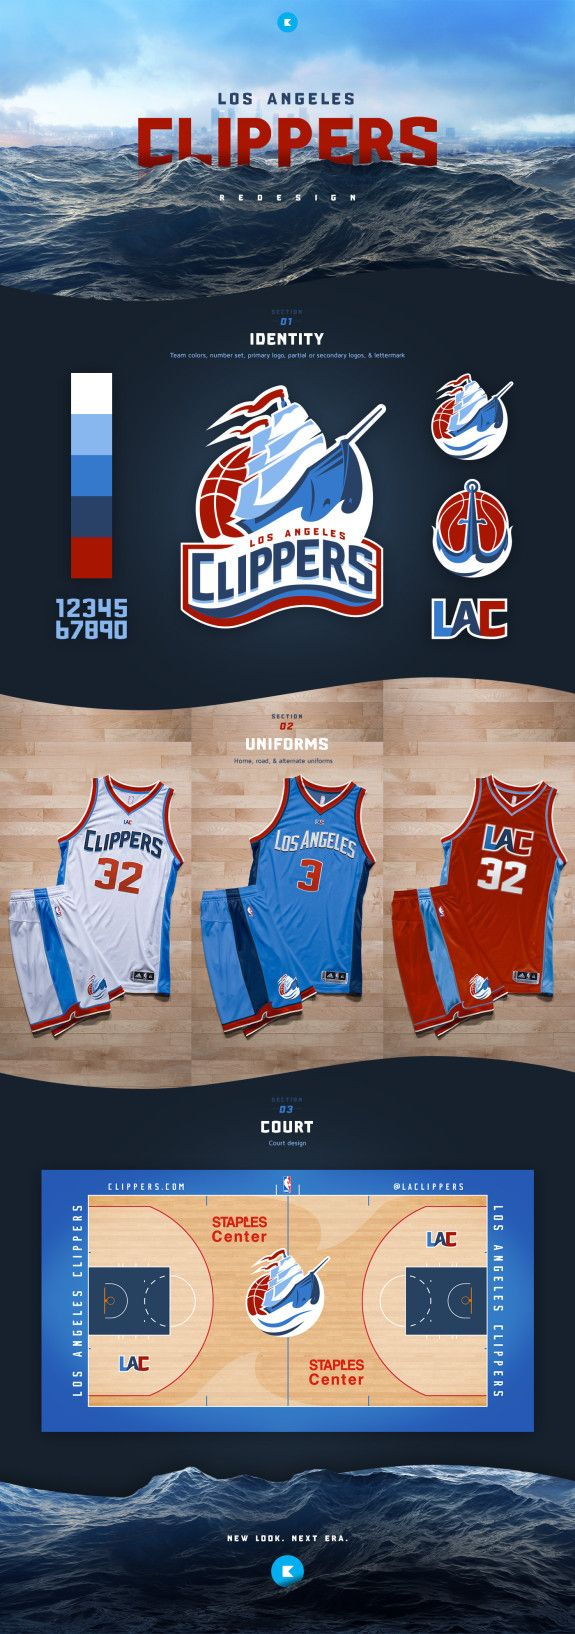 Another Solid La Clippers Branding Concept Sports Logo Design